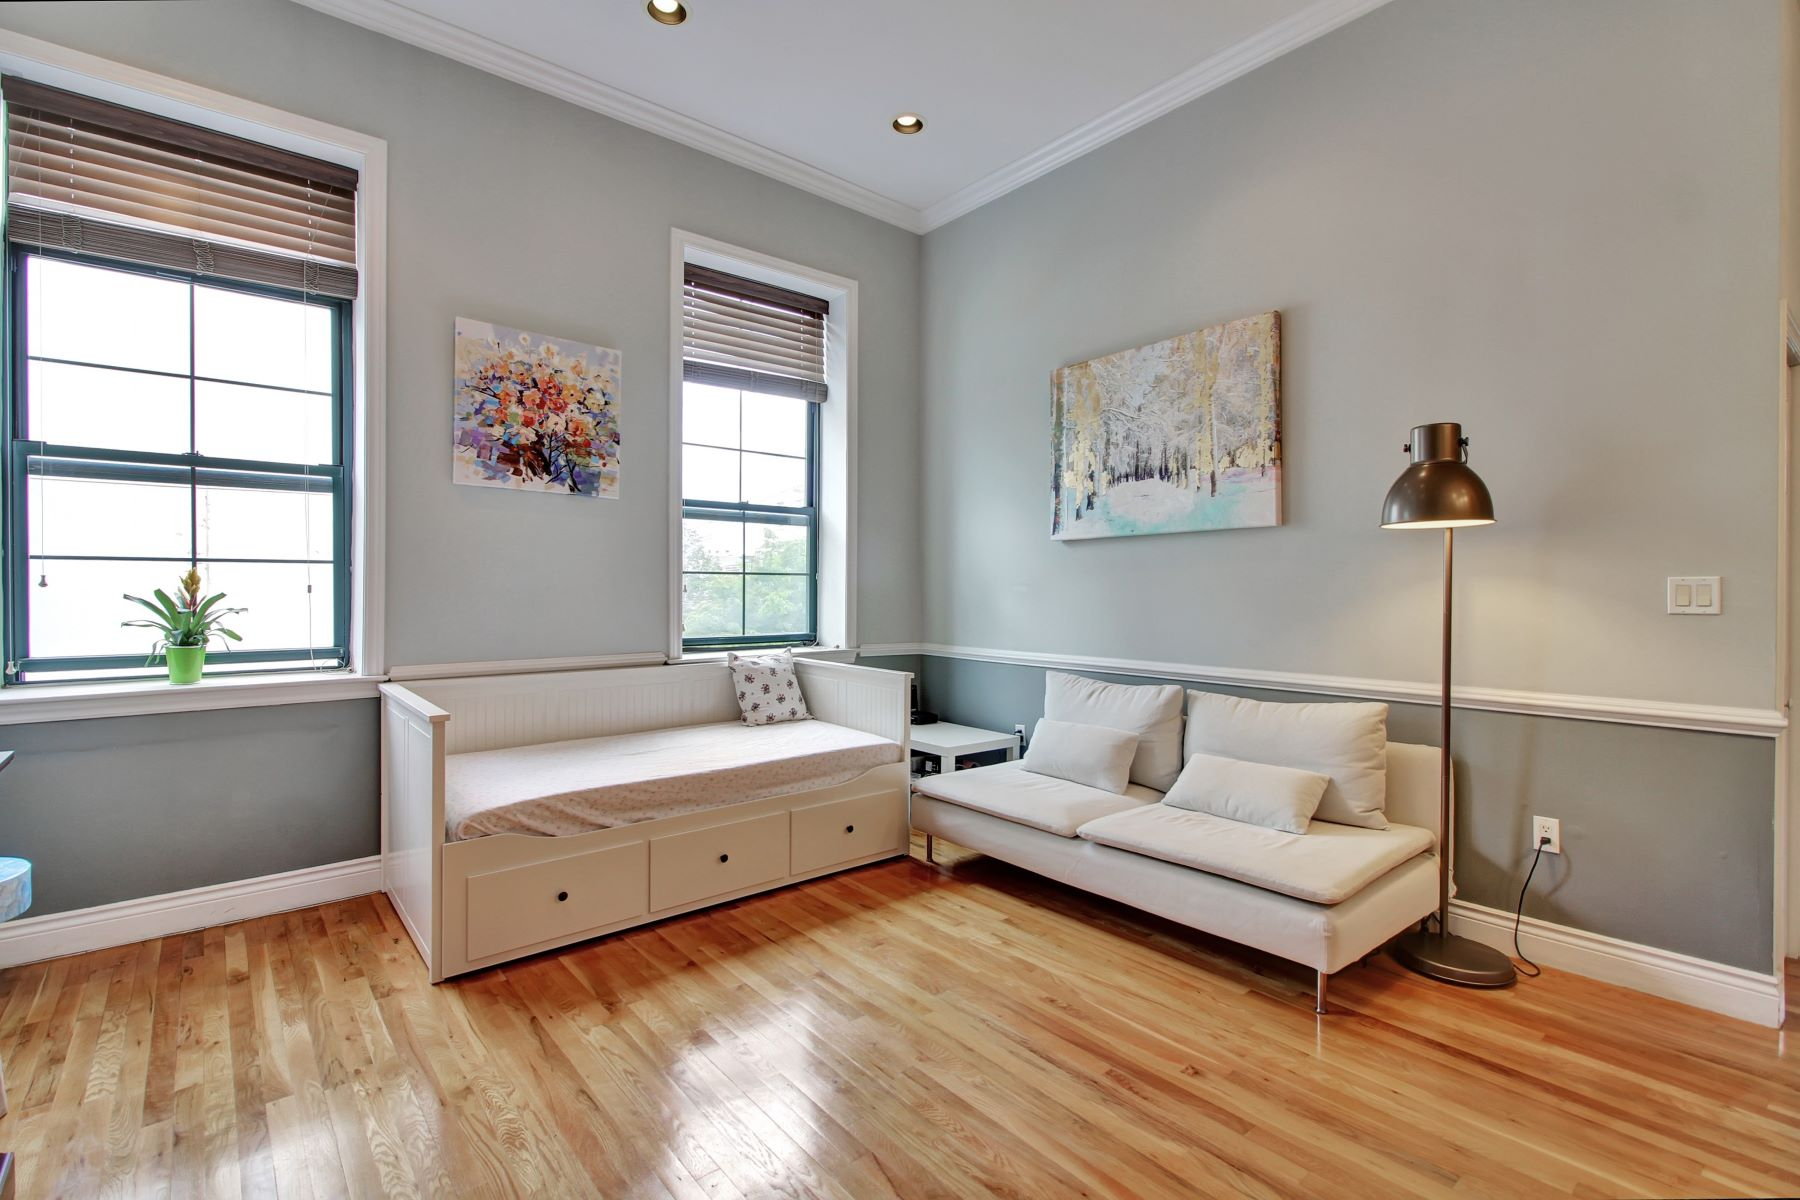 Condominium for Rent at Loft-style Two Bedroom Two full bath Condo 729 Madison Street #2B Hoboken, New Jersey 07030 United States